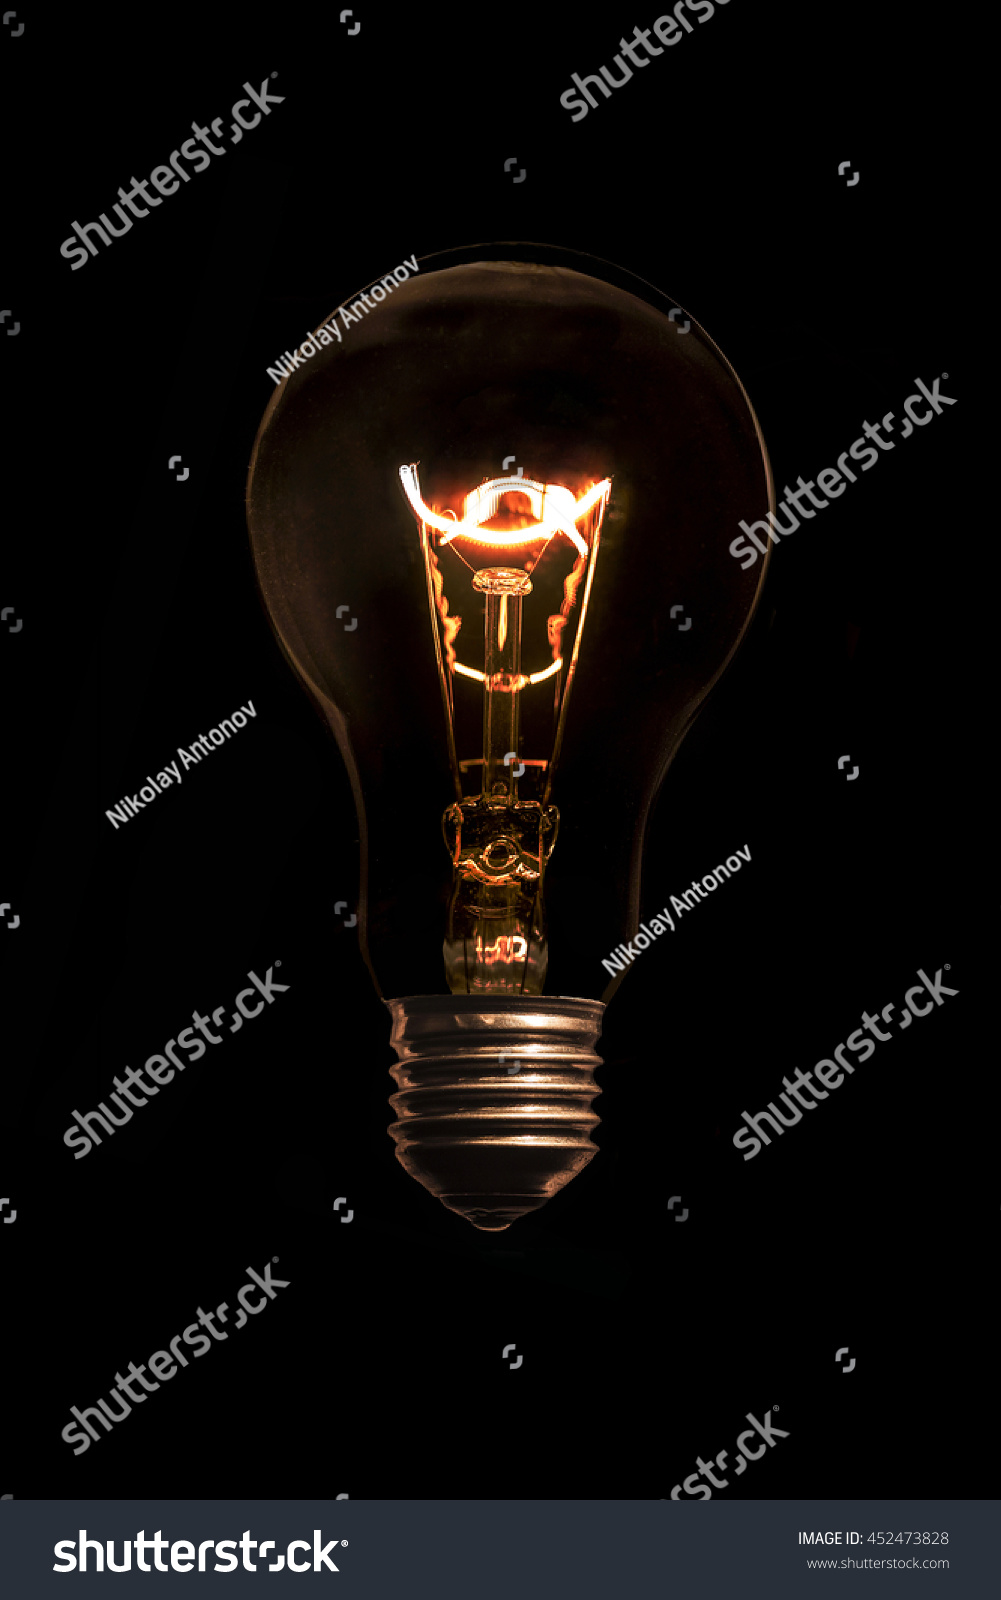 Glowing Light Bulb Without Wires On Stock Photo 452473828 ...